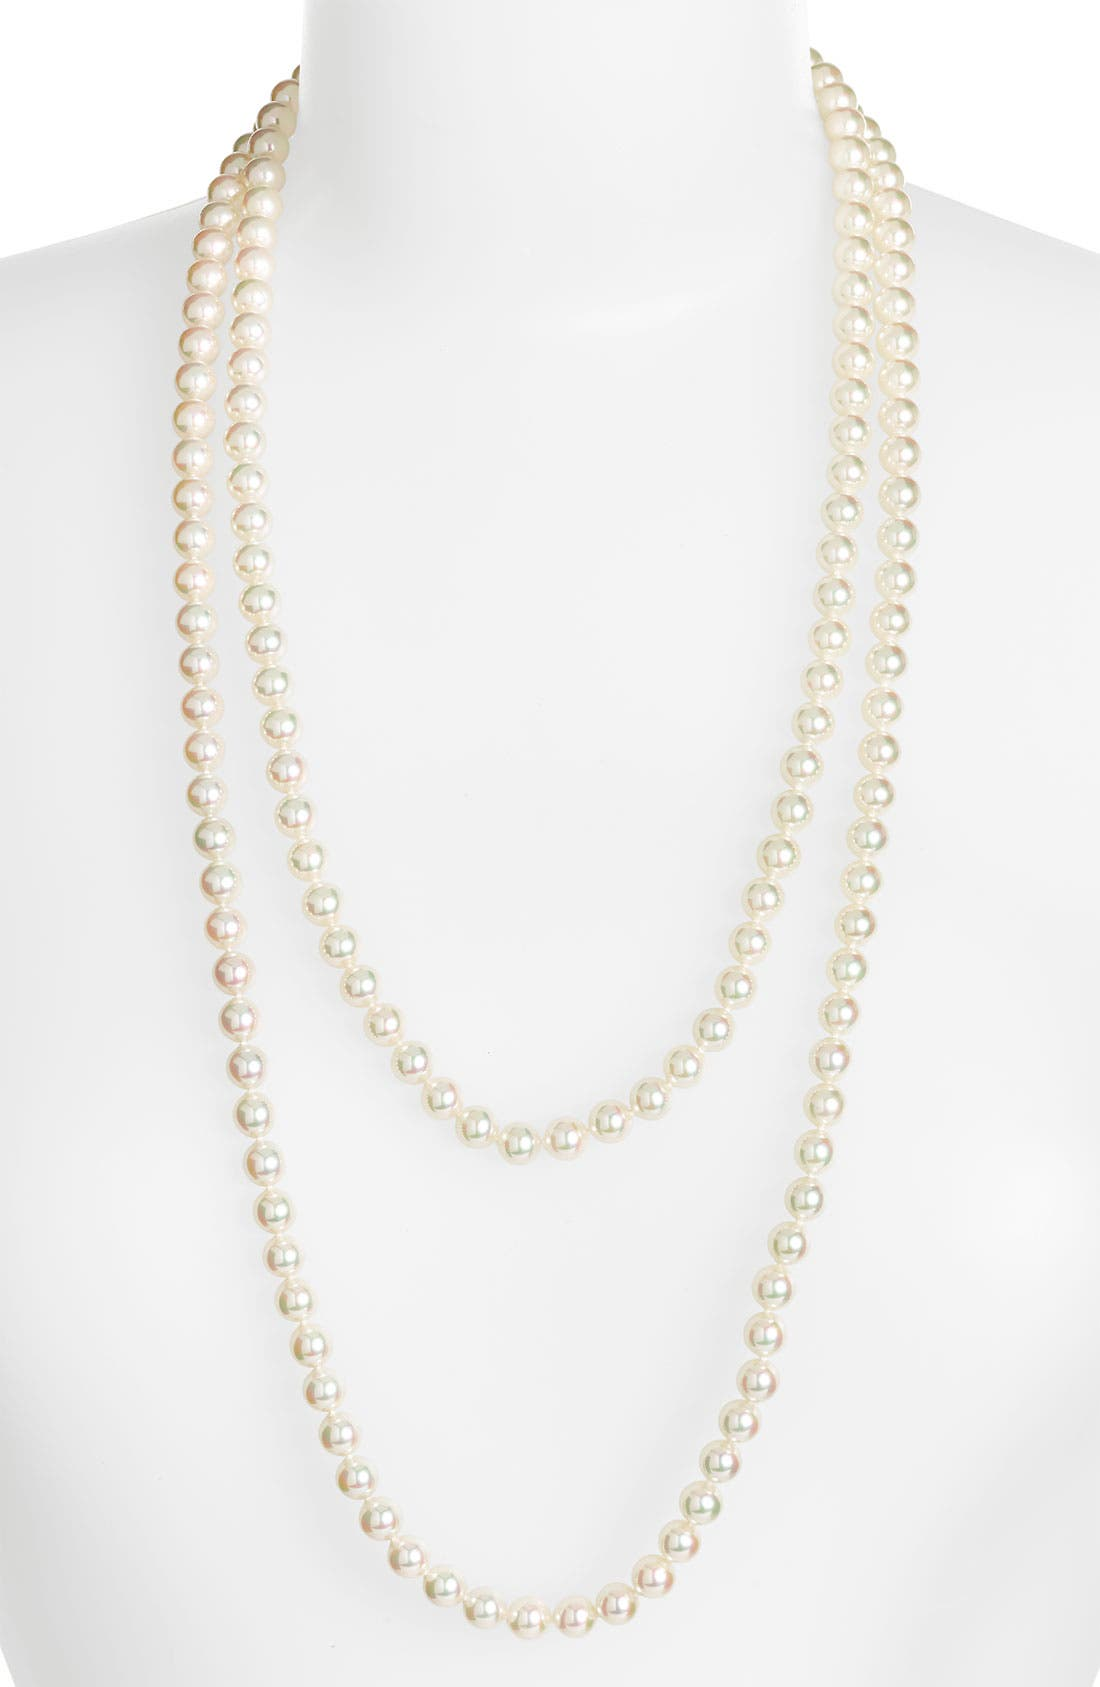 7mm Round Pearl Endless Rope Necklace,                             Main thumbnail 1, color,                             White/ Silver